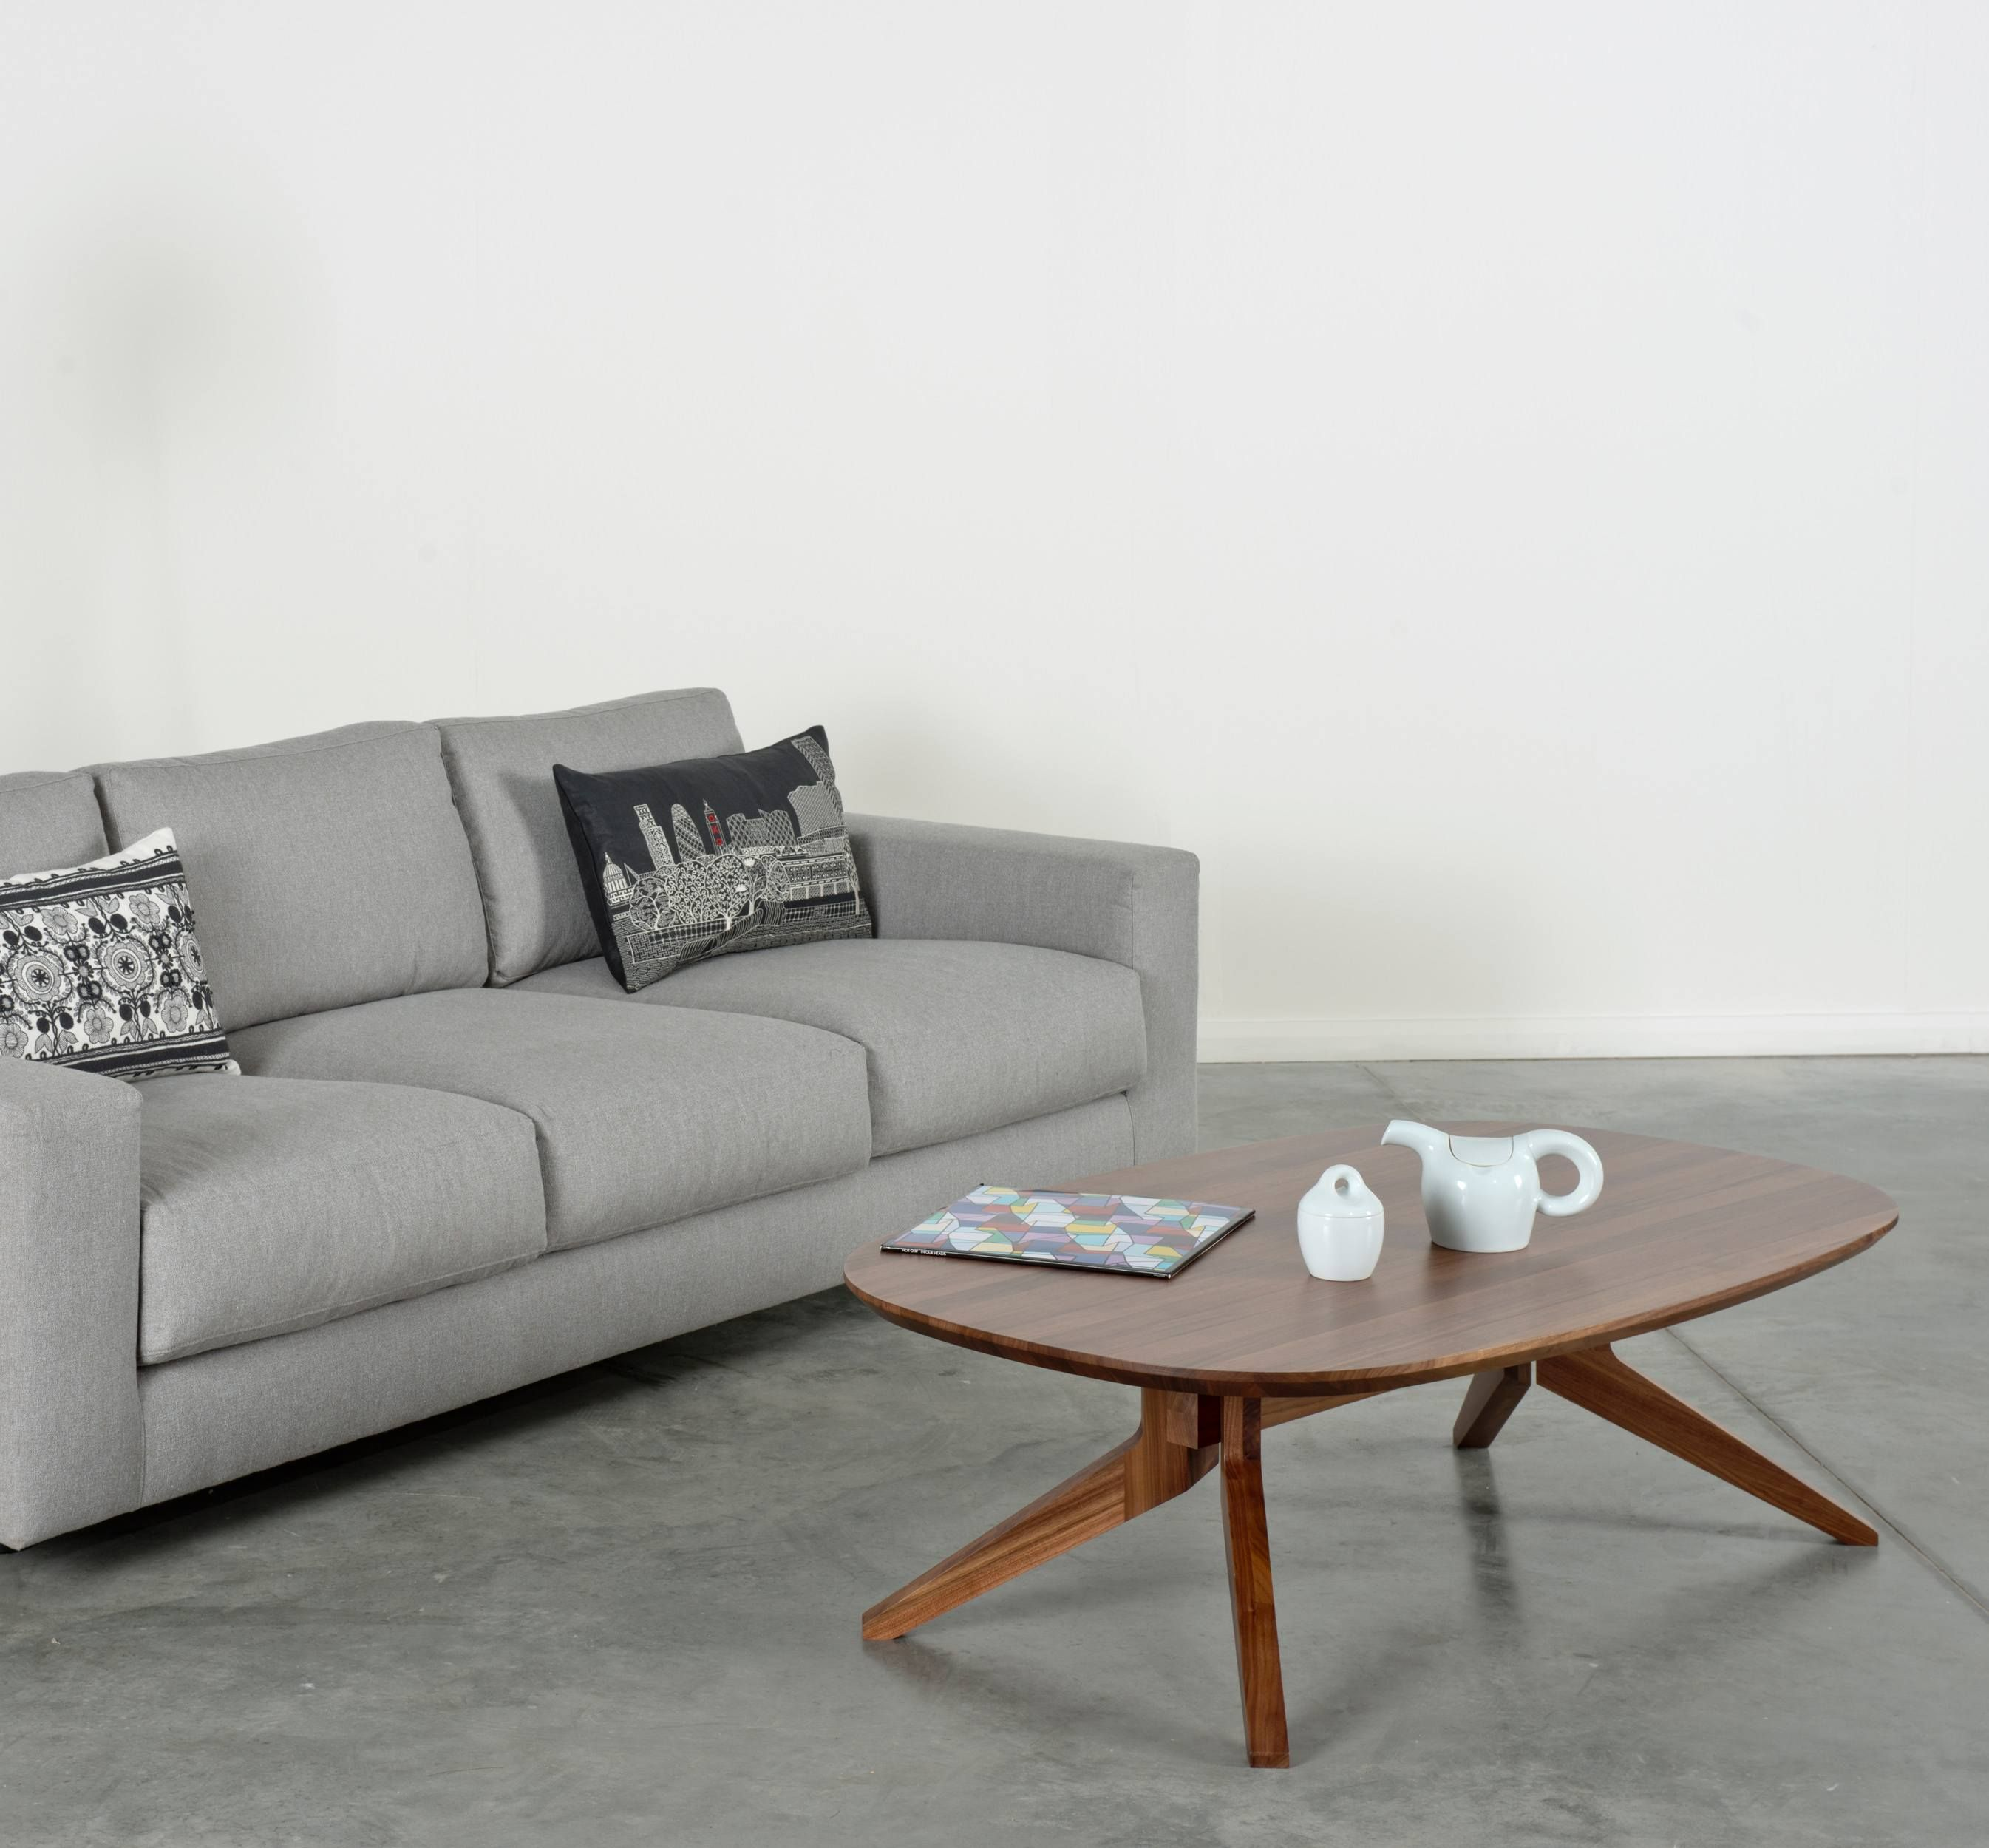 Hilton Furniture Living Room Sets Wall Clock Position In Cross Oval Coffee Table Home Furnishings Pinterest The By Matthew Repurposes Leg Detail Of Extending Underneath Solid Wood Top